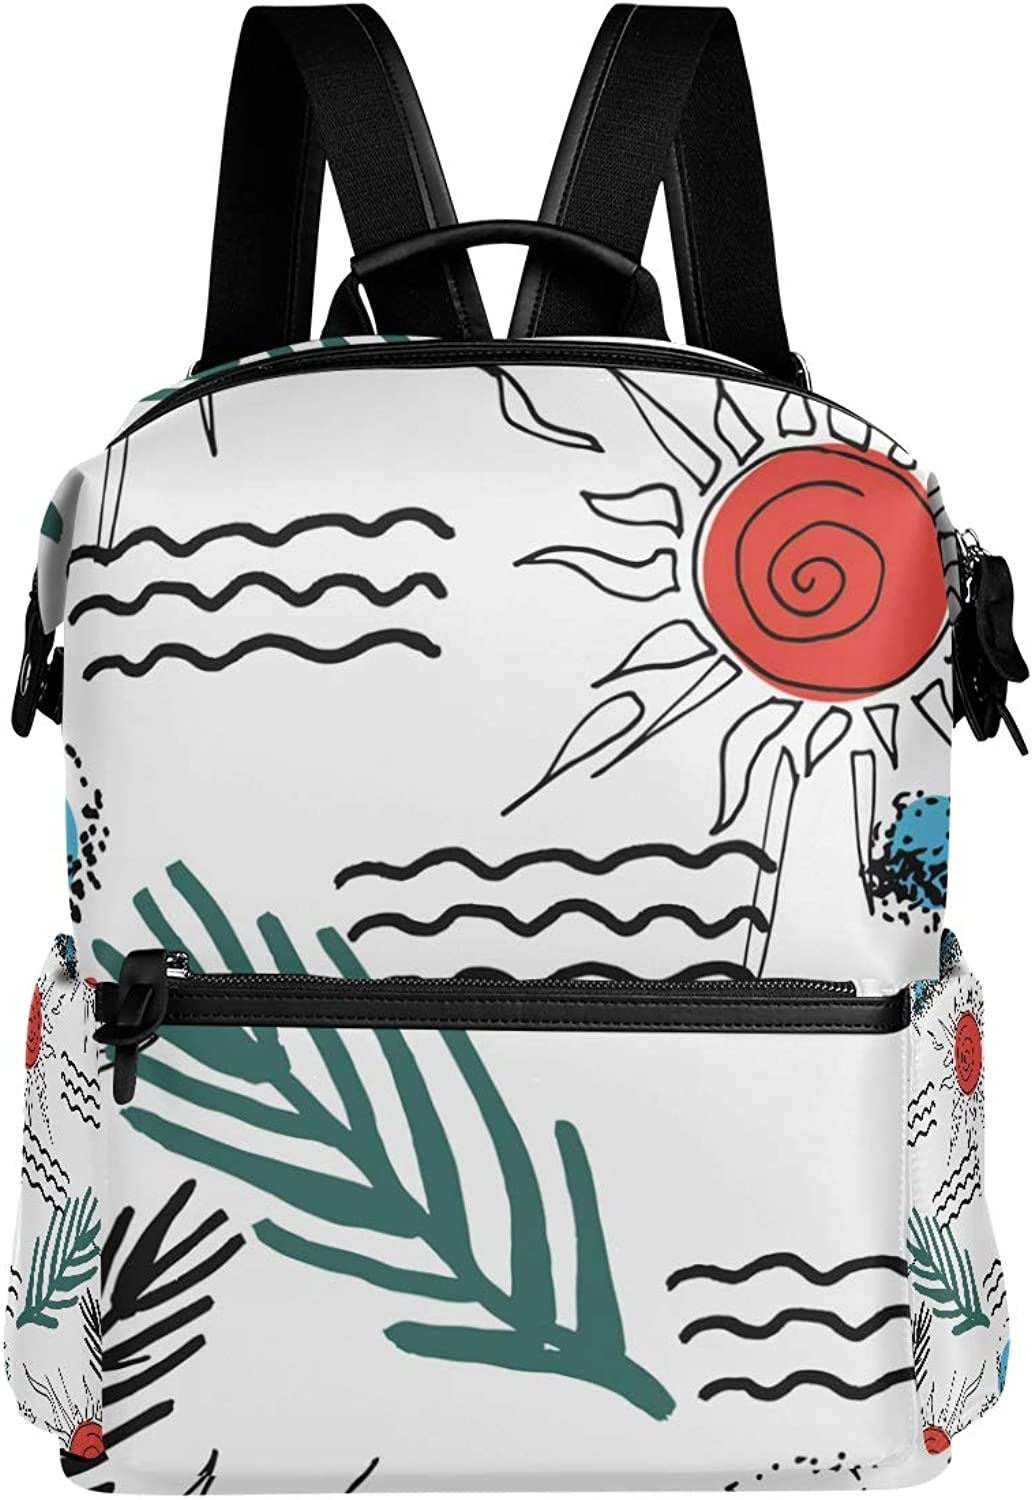 MONTOJ Hand Painted Sun River Leather Travel Bag Campus Backpack